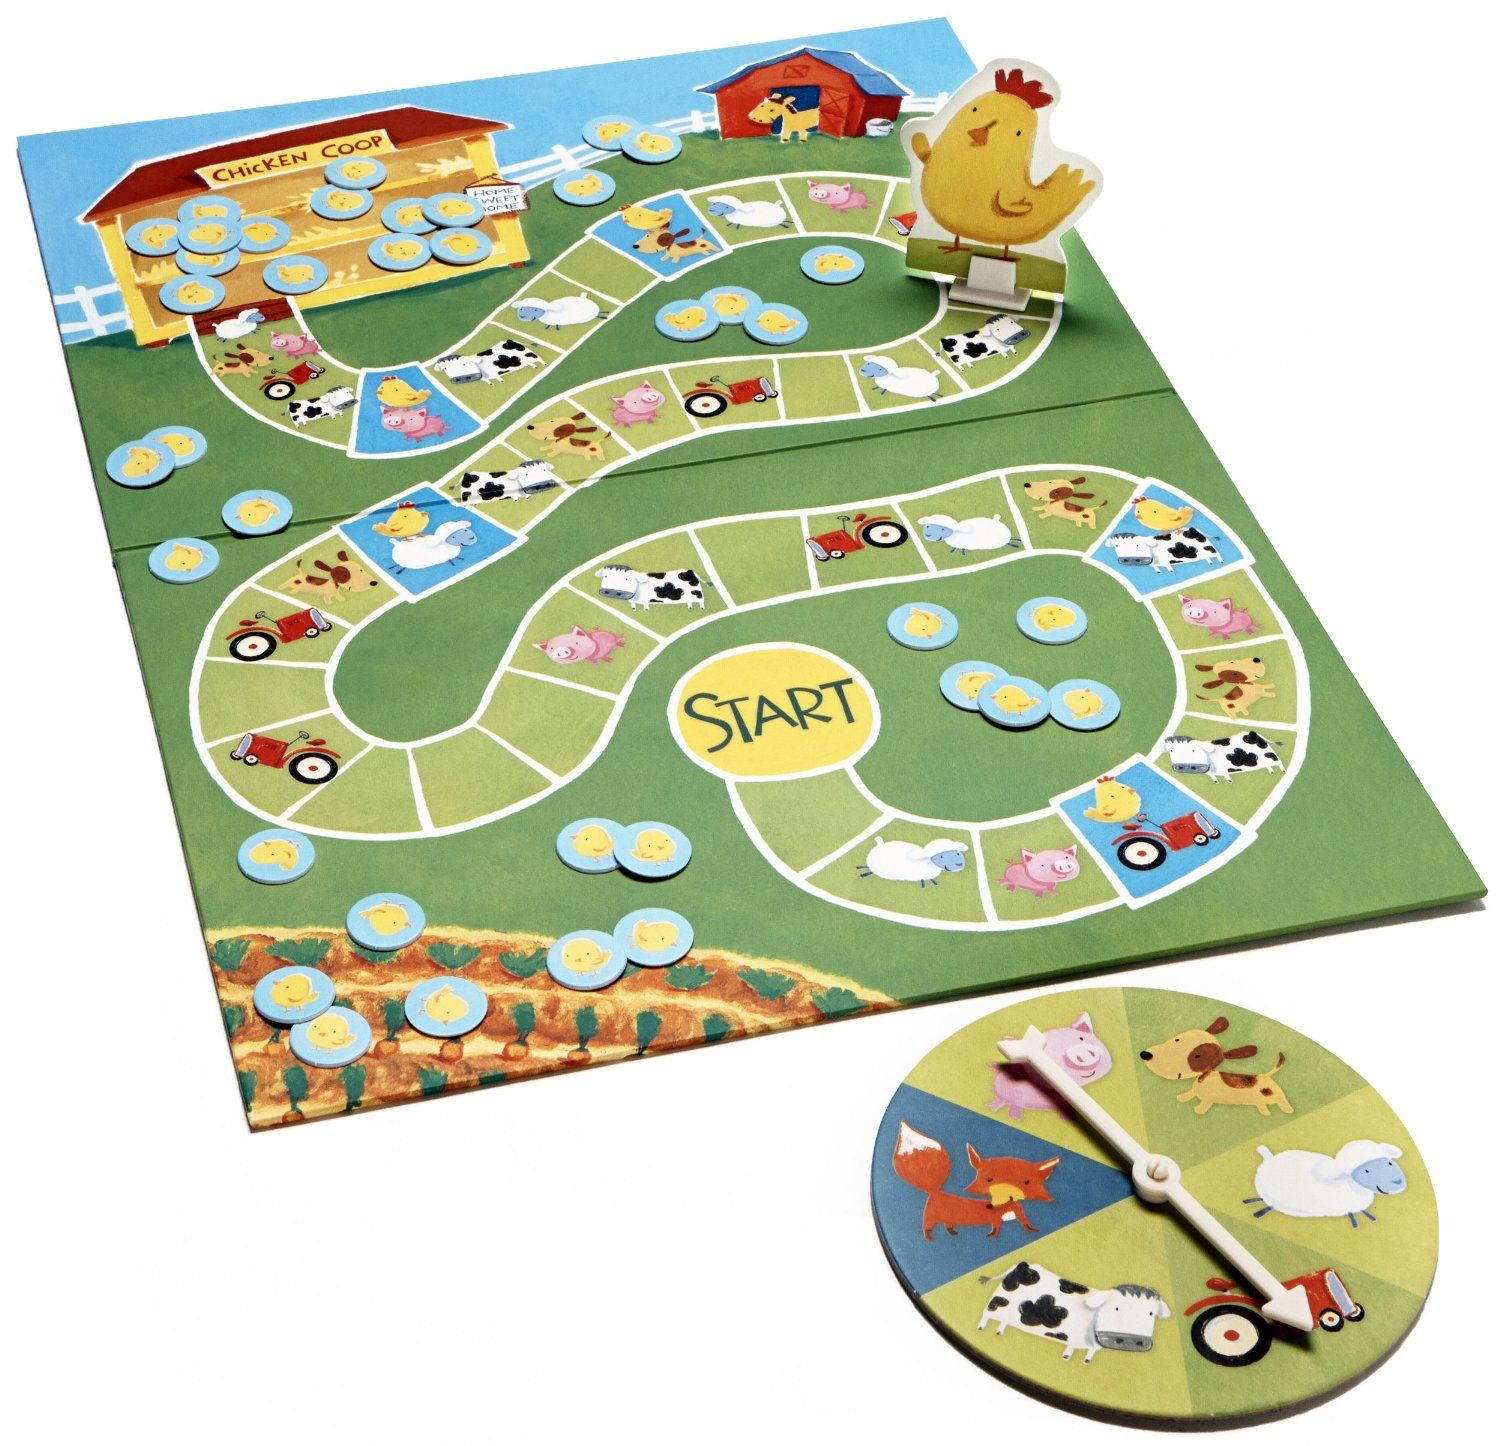 10 Great Board Games for 3 Year Olds Gifts for 3 year